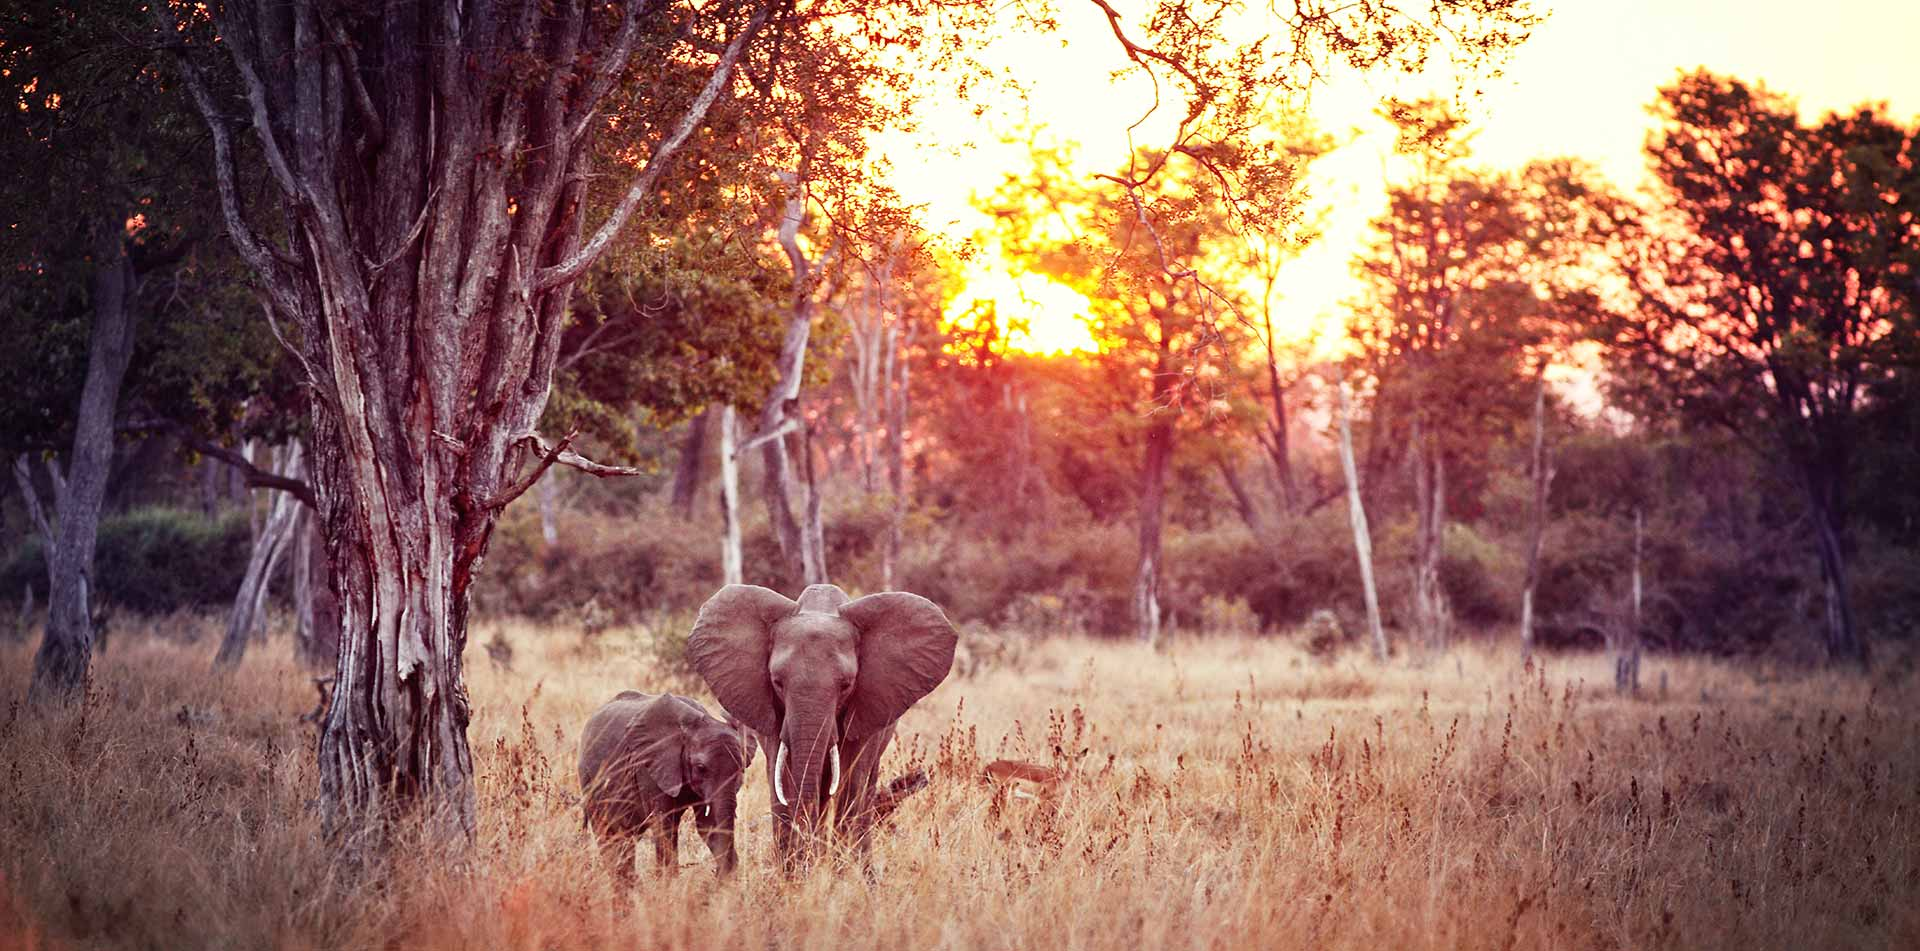 Africa Zambia Luangwa National Park safari wild baby elephants colorful sunset - luxury vacation destinations